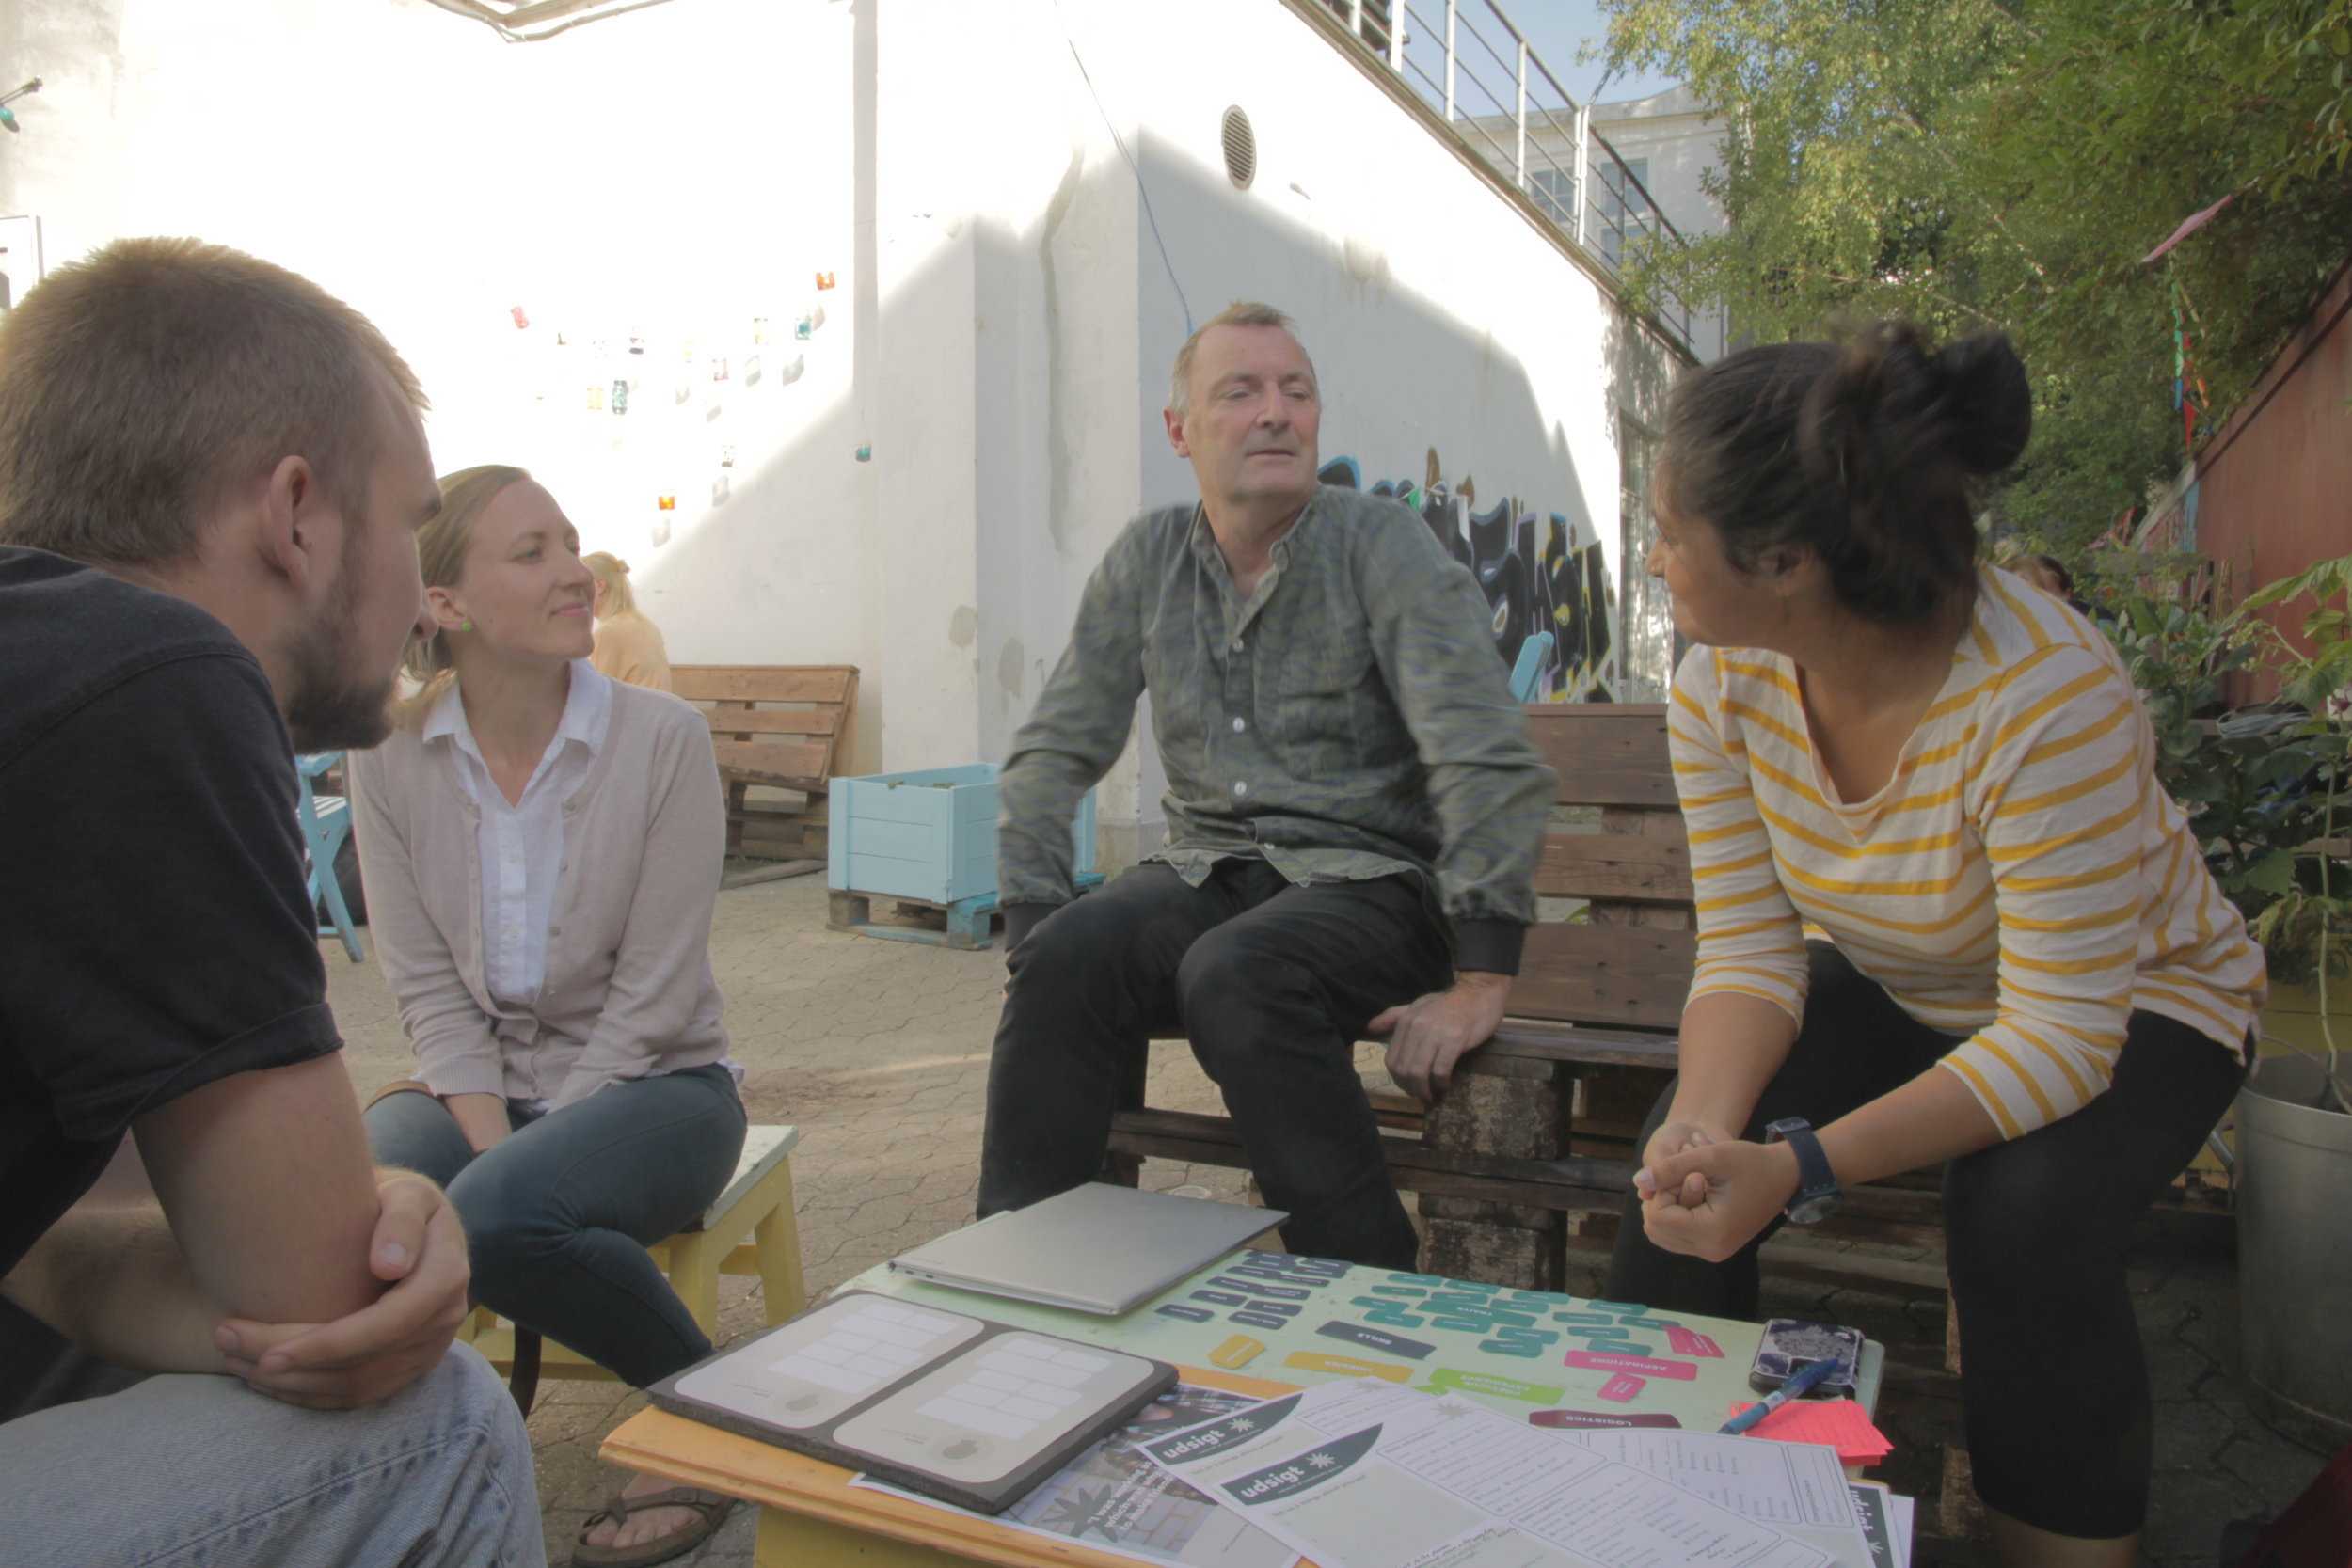 Interviews and co-creation at Trampoline House